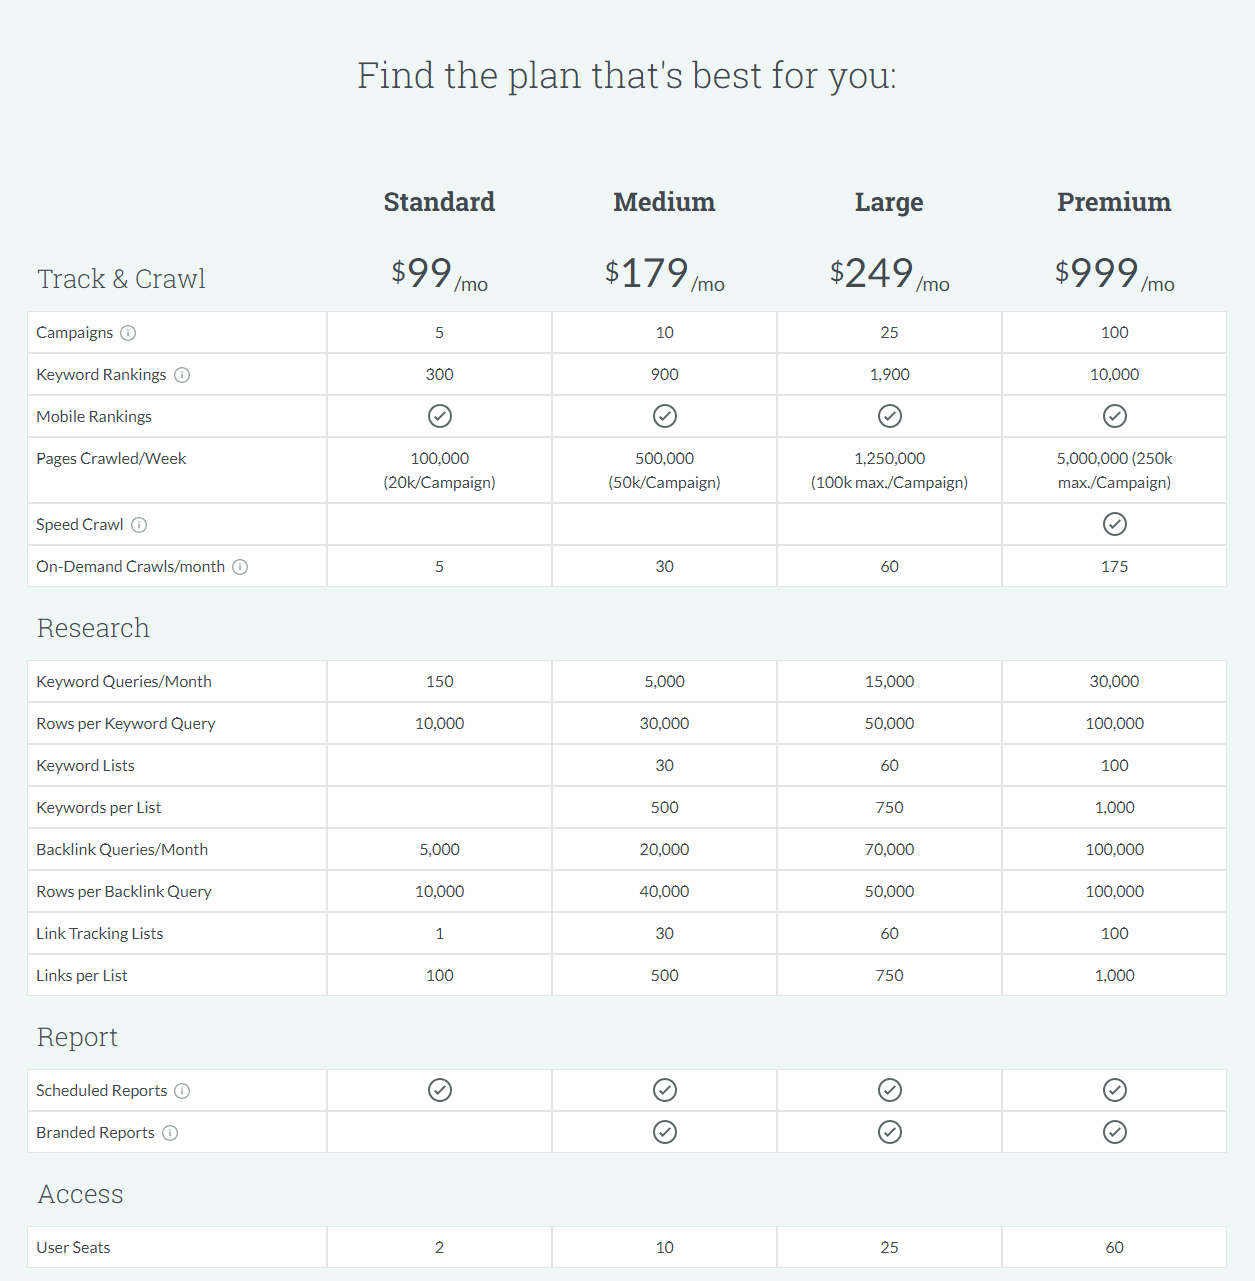 Tiered Pricing: SaaS Usage-based Pricing Model Overview